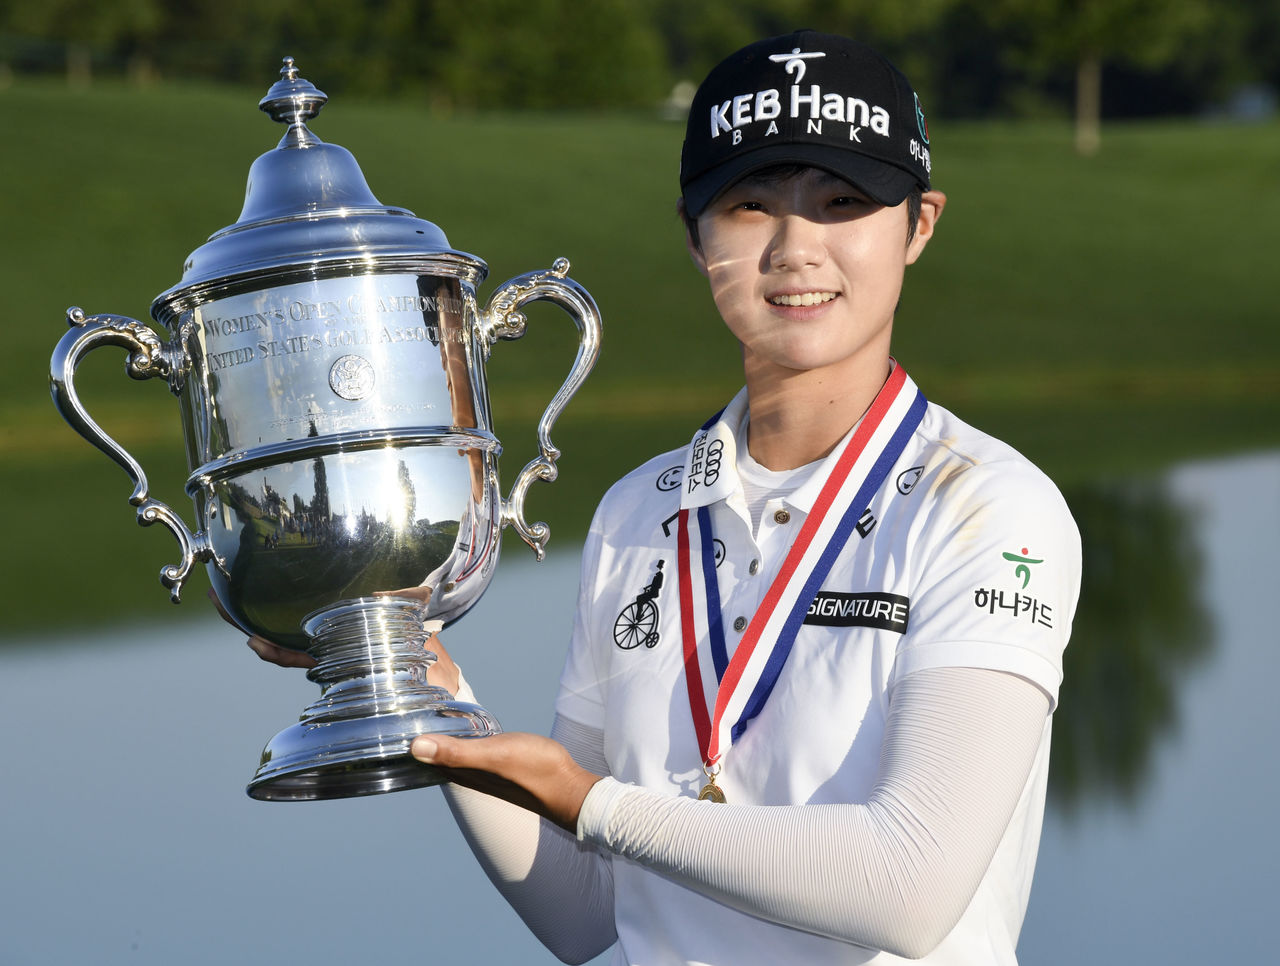 Cropped 2017 07 16t232050z 1445707837 nocid rtrmadp 3 lpga u s women s open final round